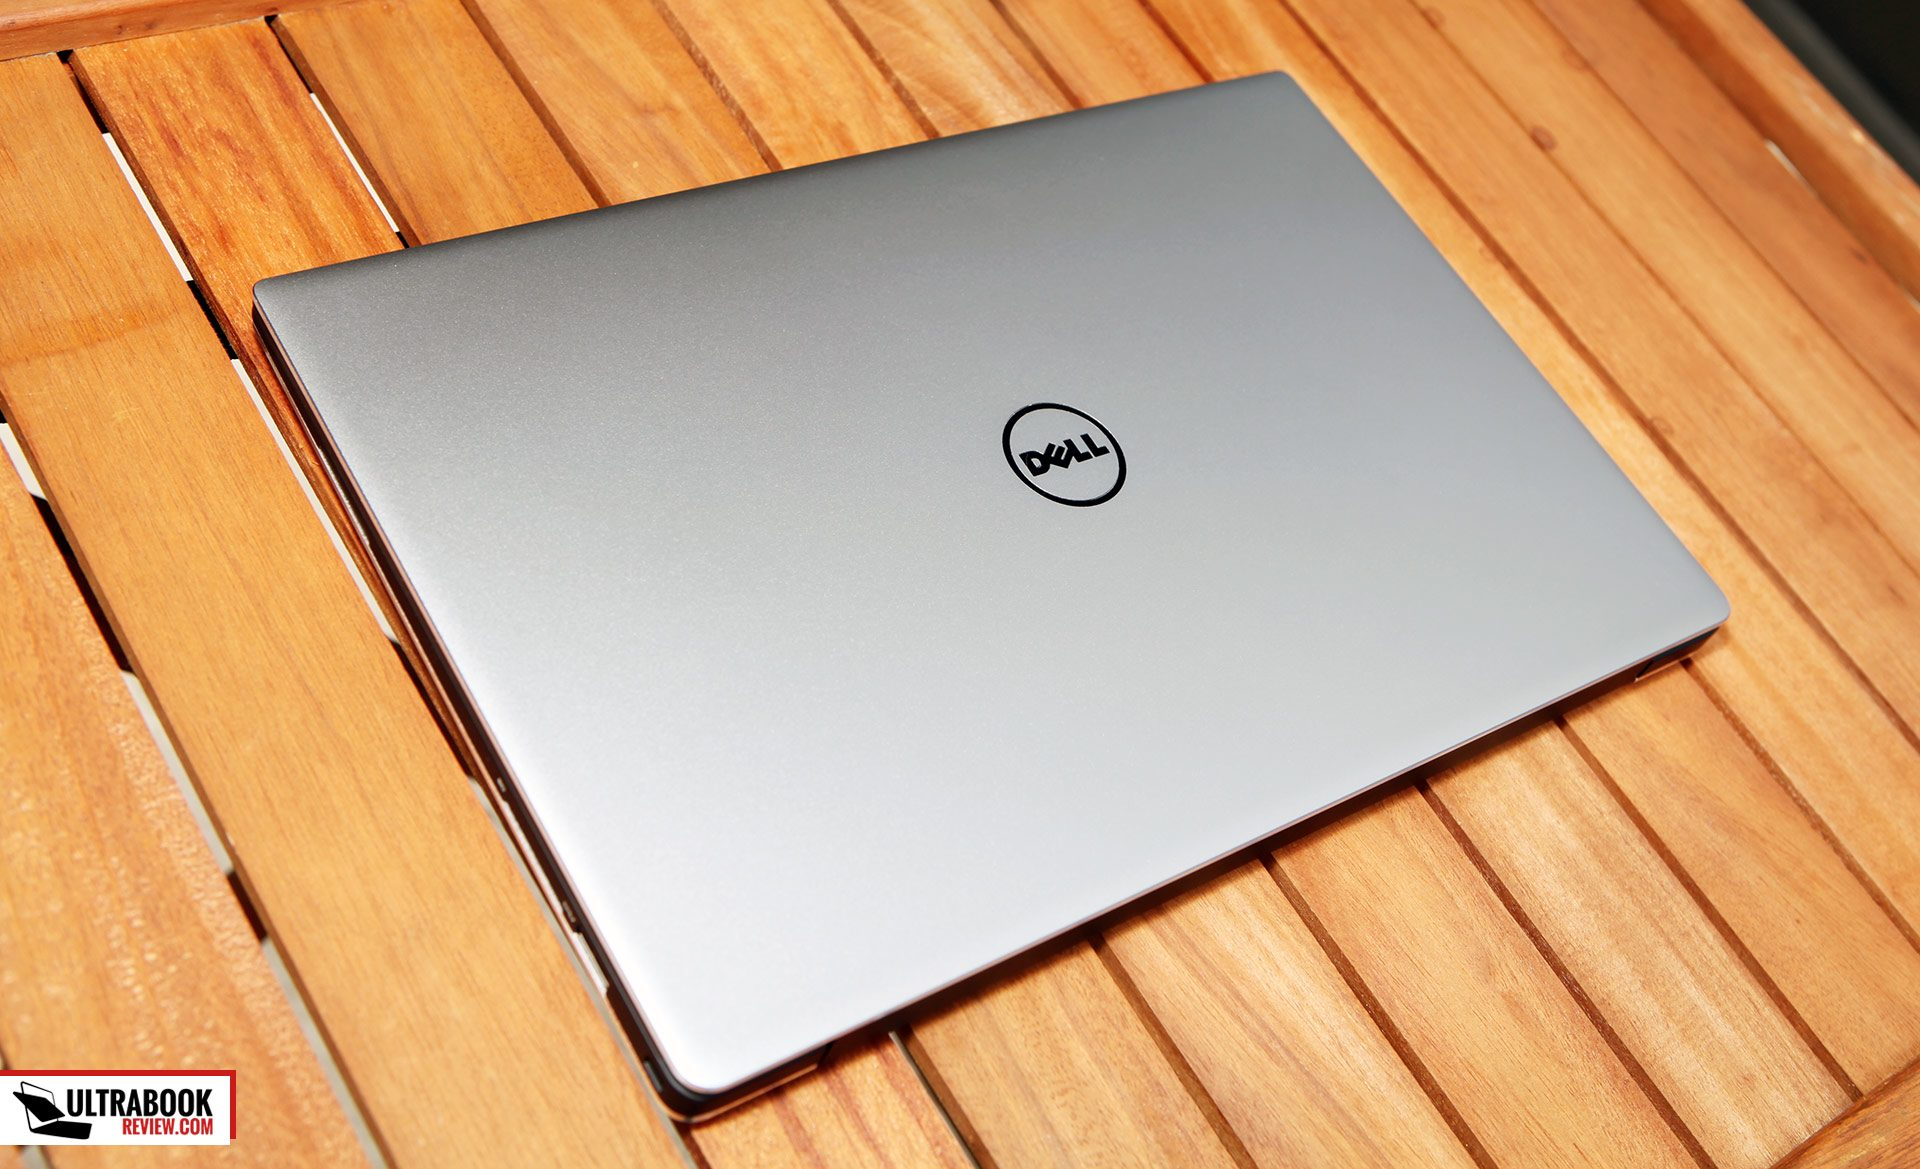 Dell Xps 13 9350 Review Core I7 6560u Configuration With Intel